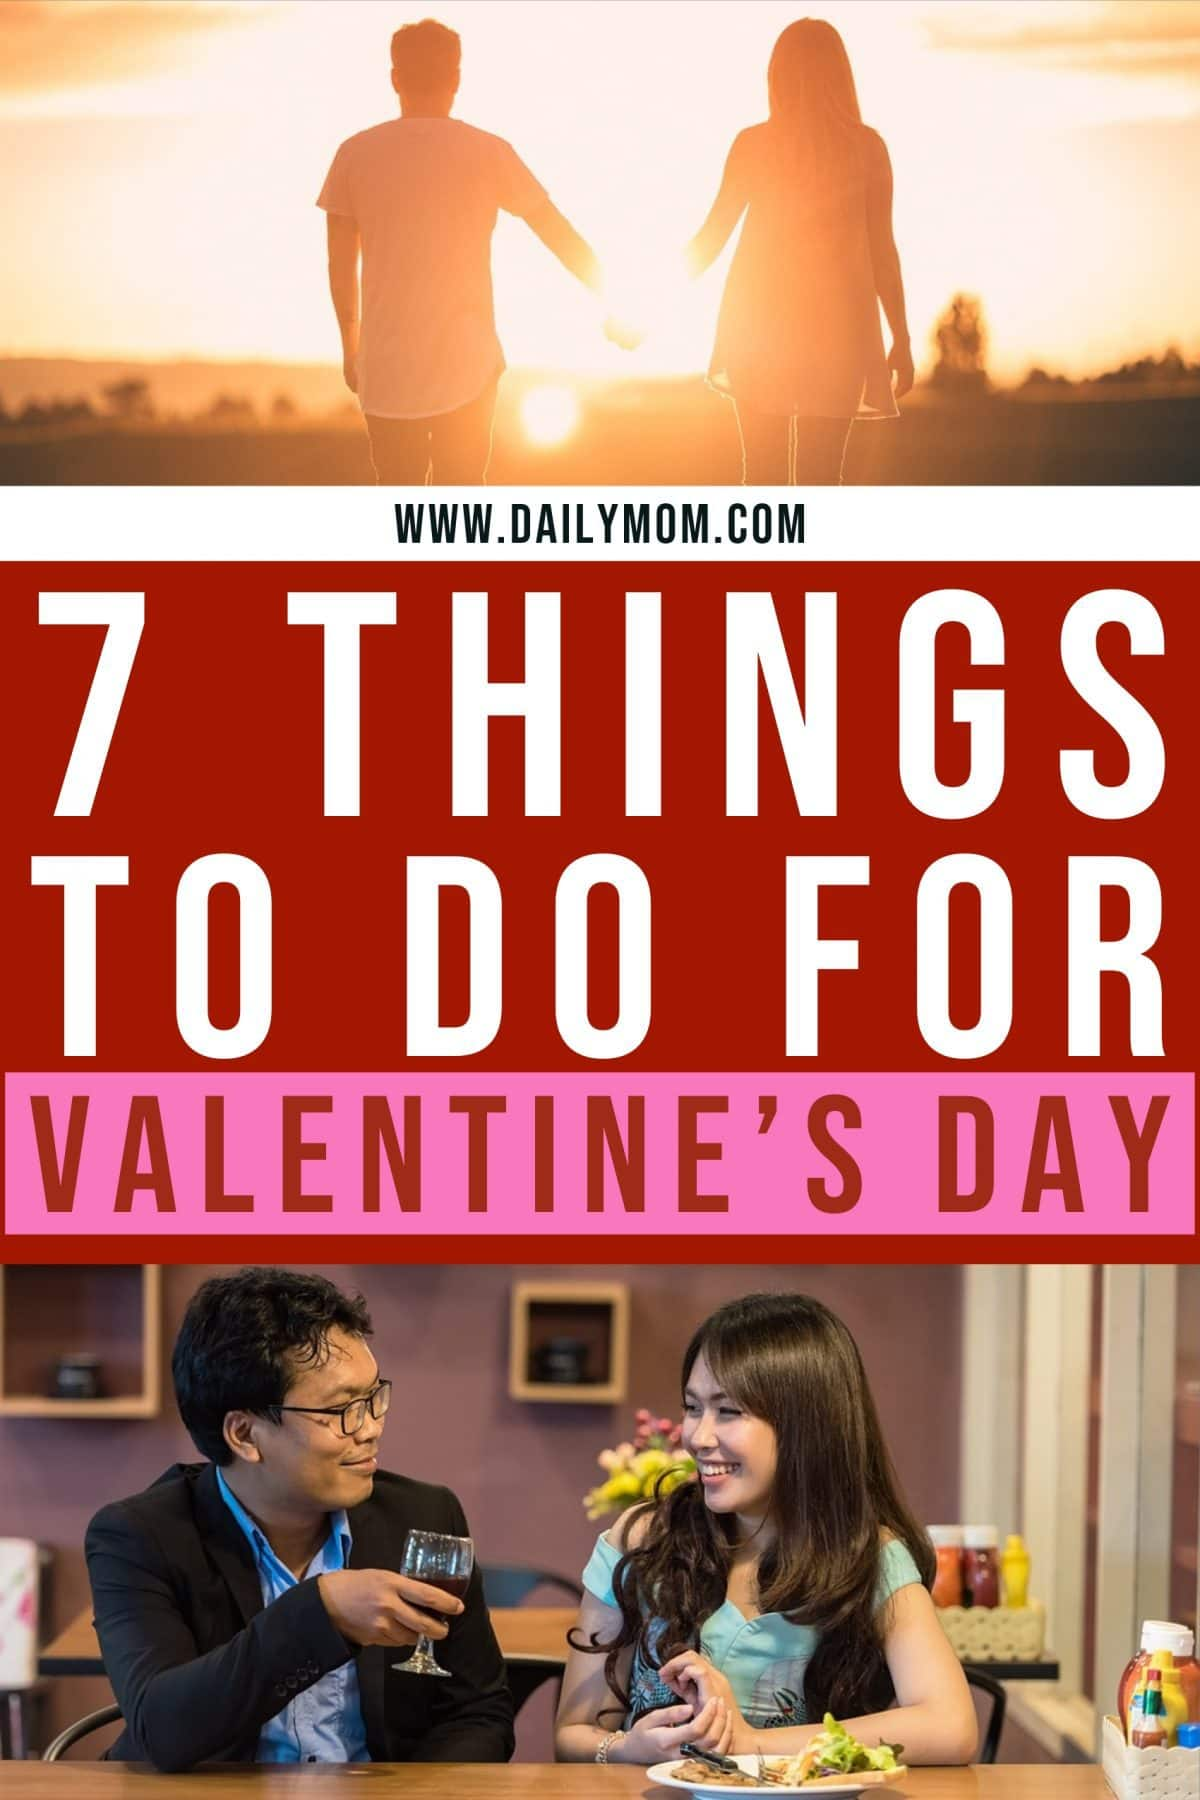 7 Things To Do For Valentine's Day